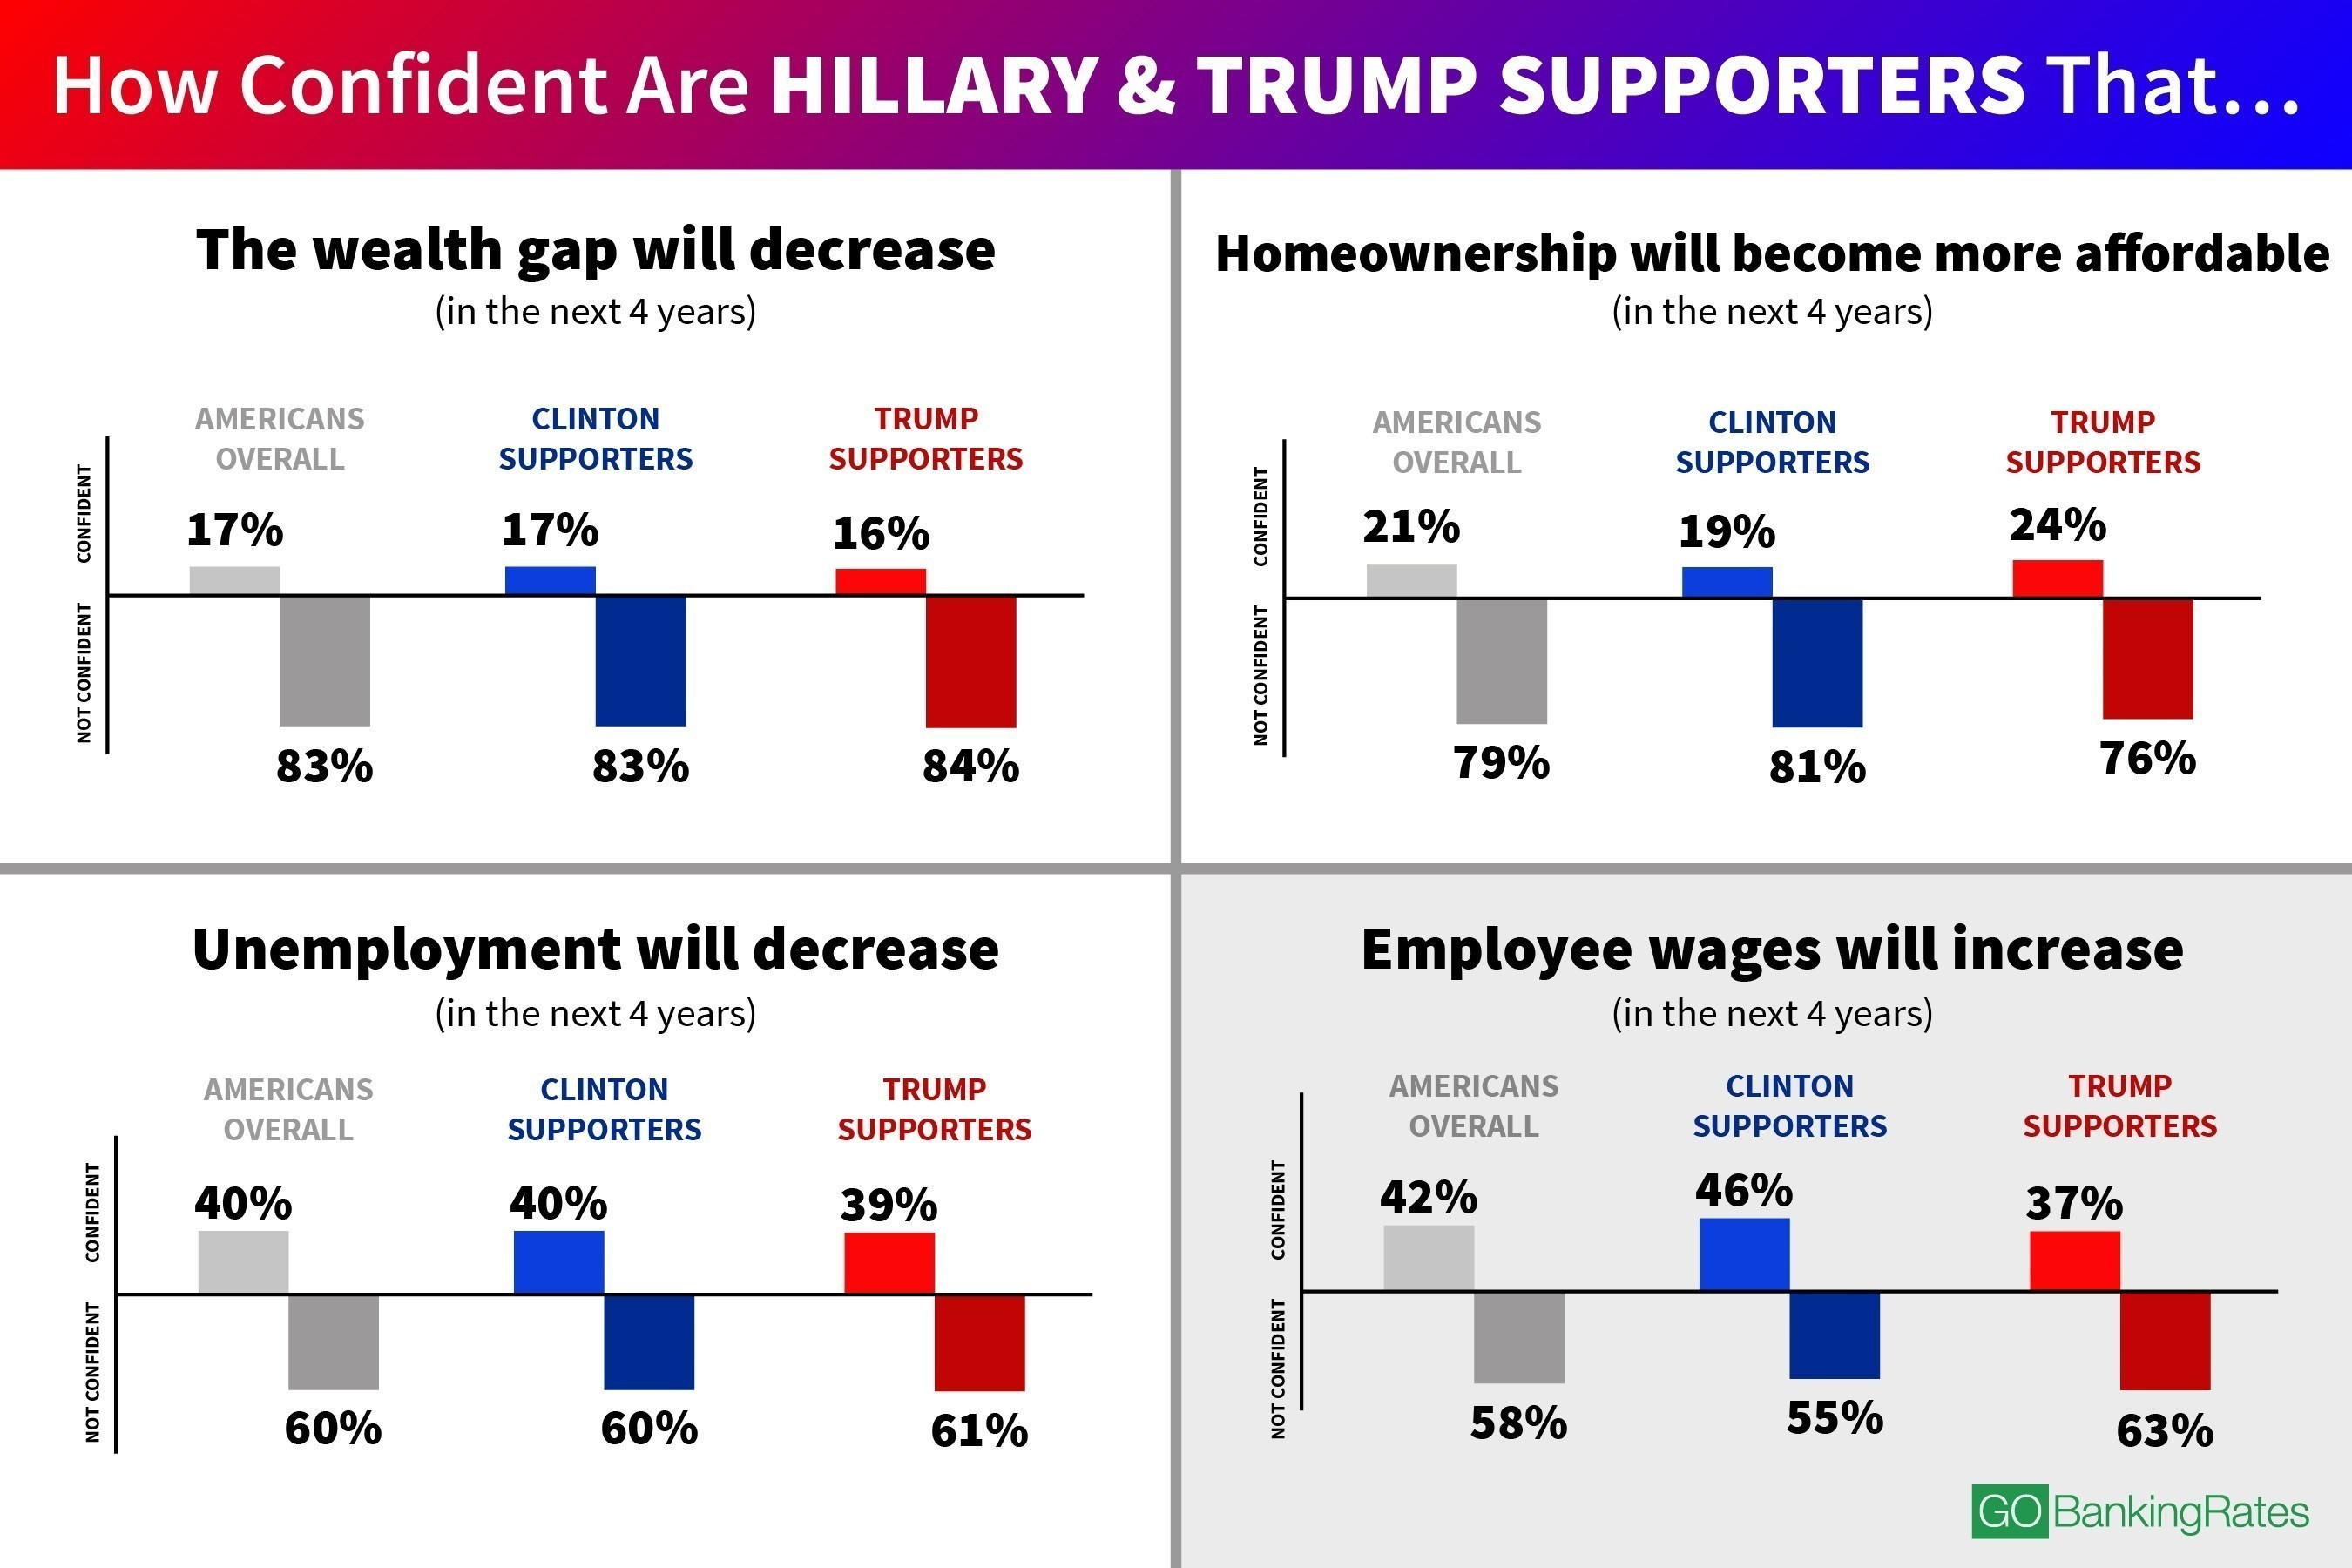 Hillary and Trump Supporters Actually Agree on These 3 Things, Survey Finds